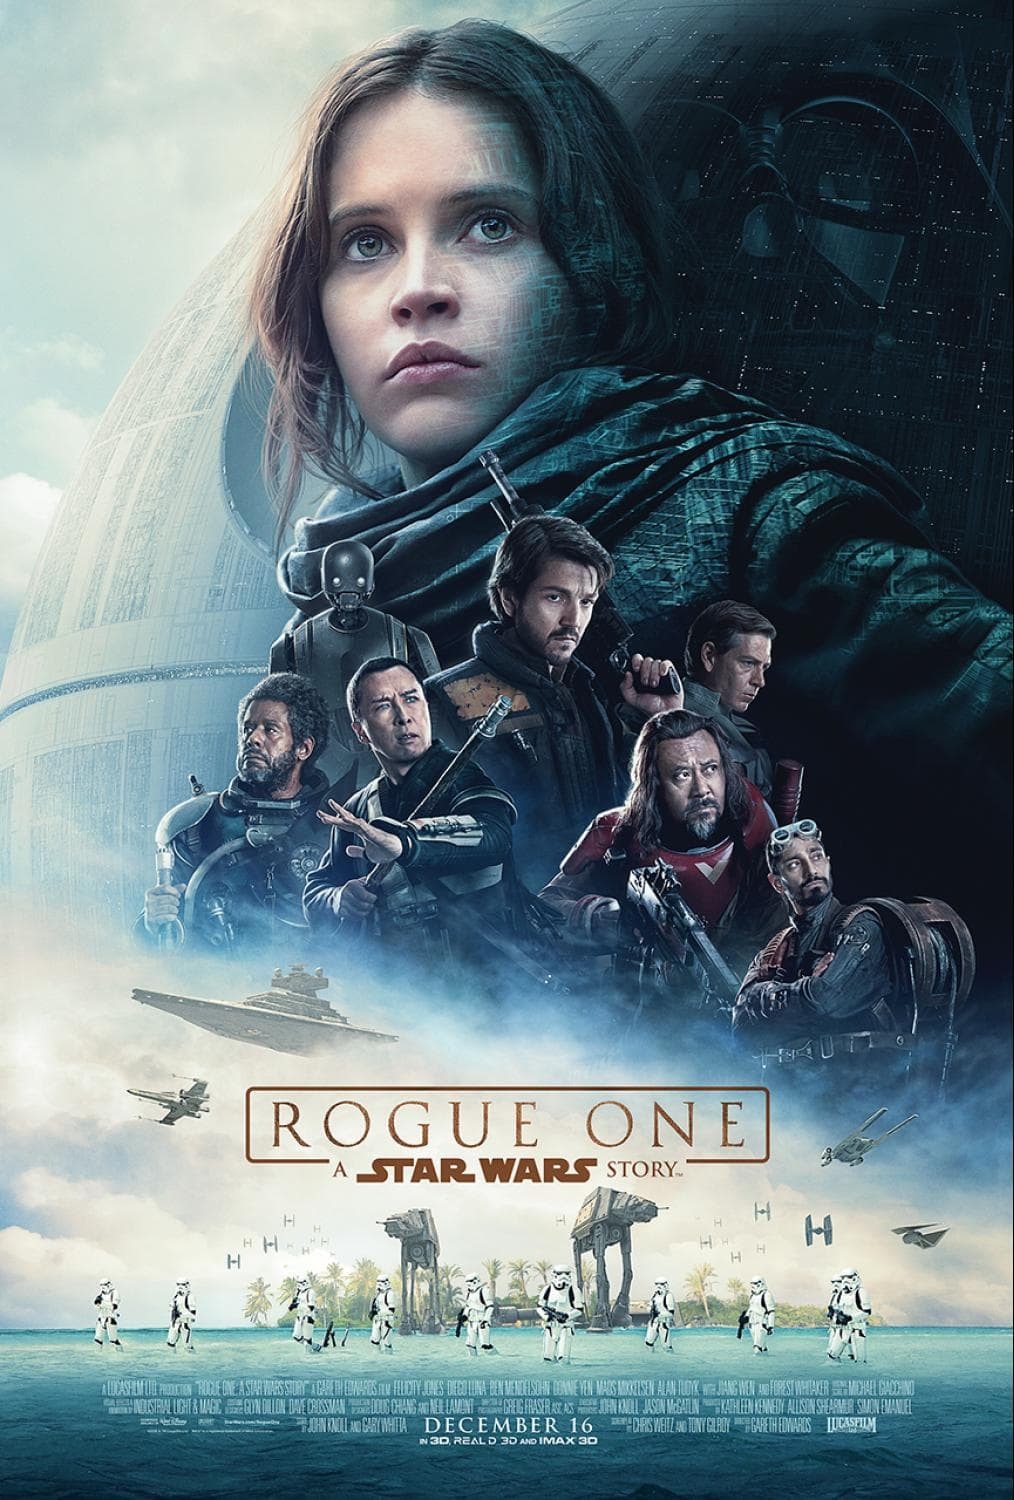 ROGUE ONE : A STAR WARS STORY - New Featurette and TV Spot Now Available